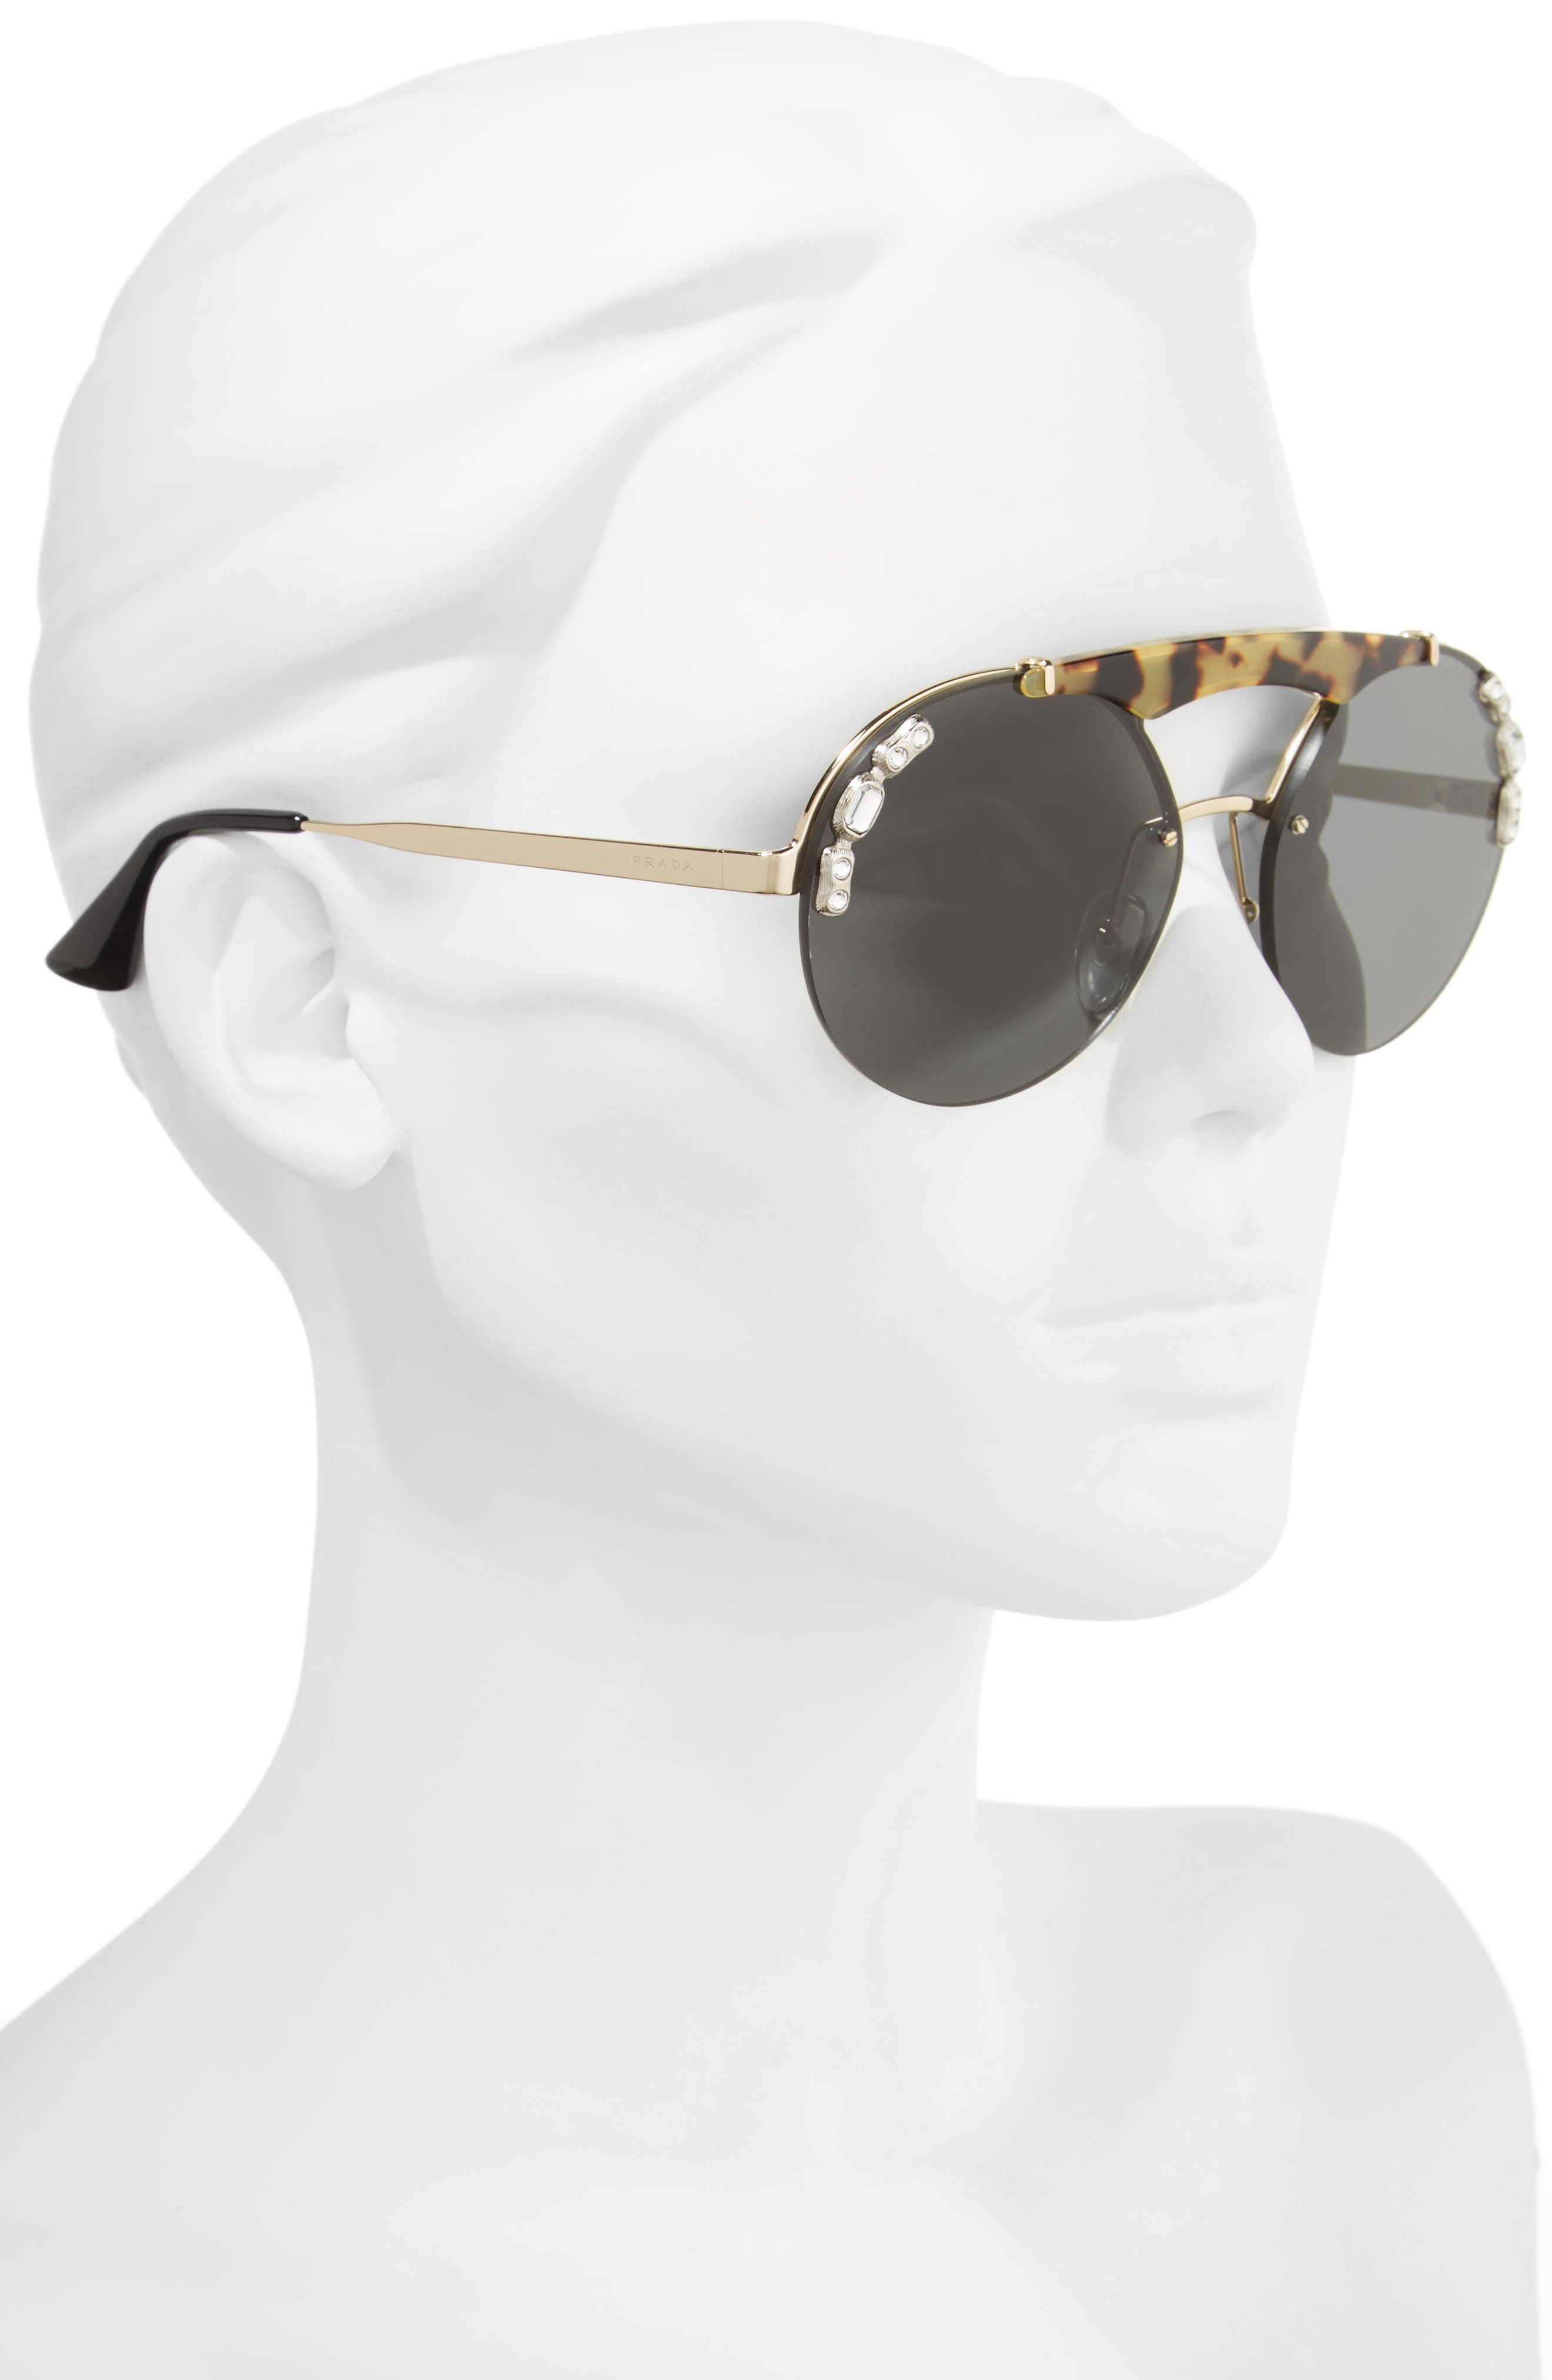 52mm Embellished Round Rimless Sunglasses,                             Alternate thumbnail 2, color,                             100